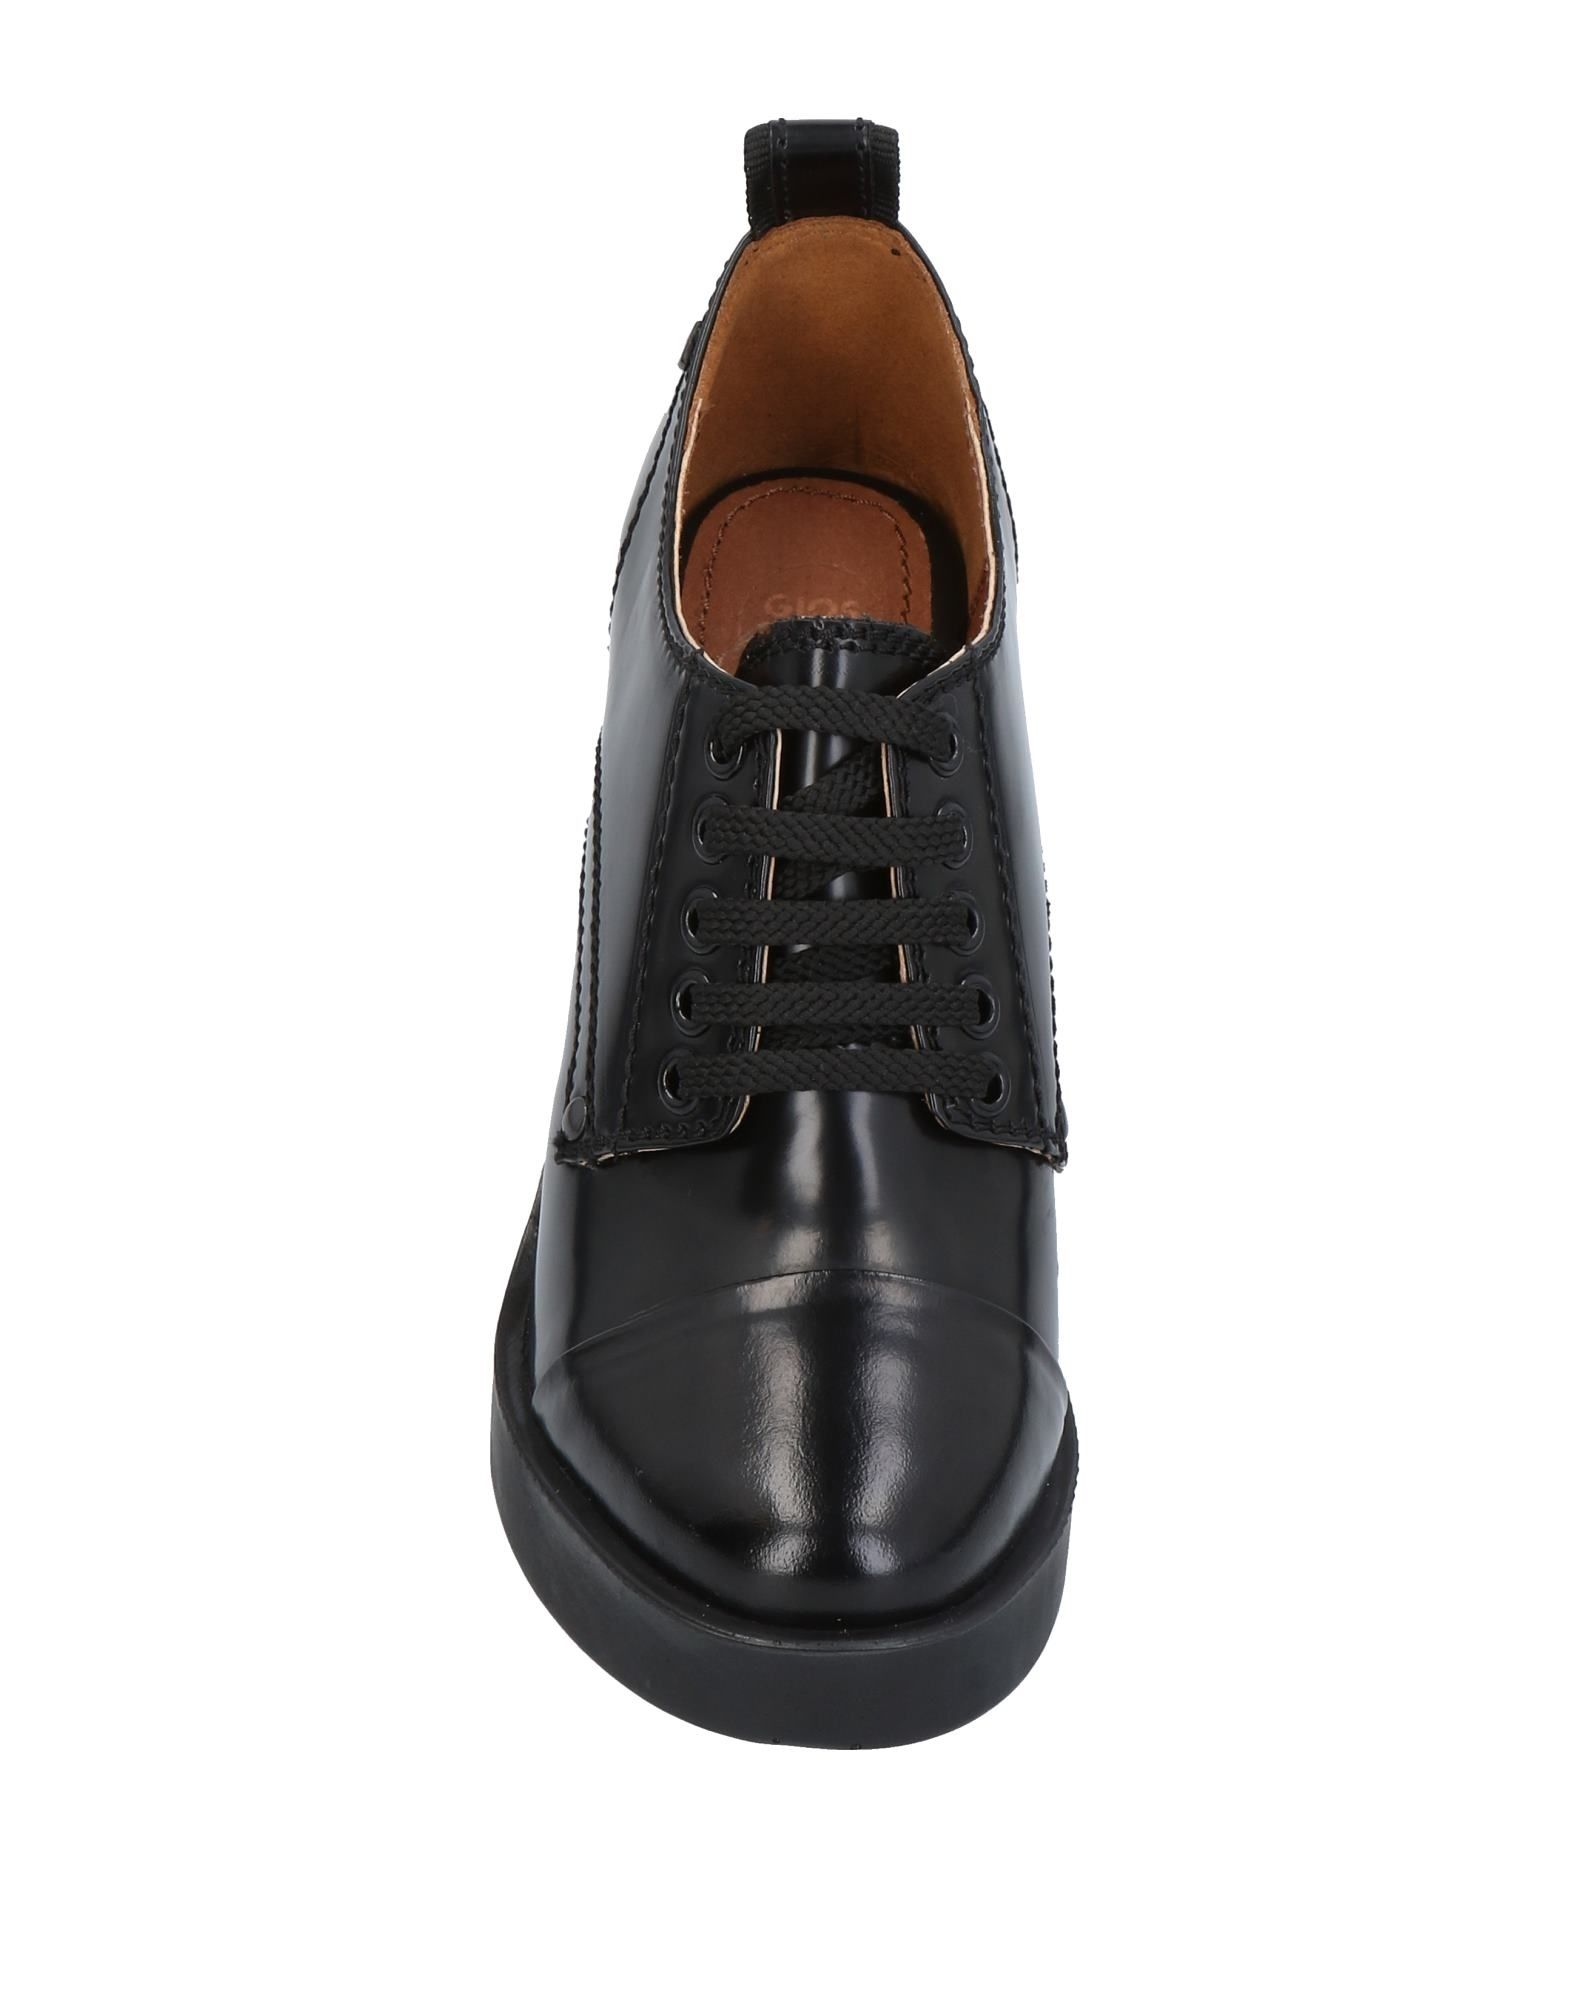 Chaussures À Lacets Gioseppo Femme - Chaussures À Lacets Gioseppo sur